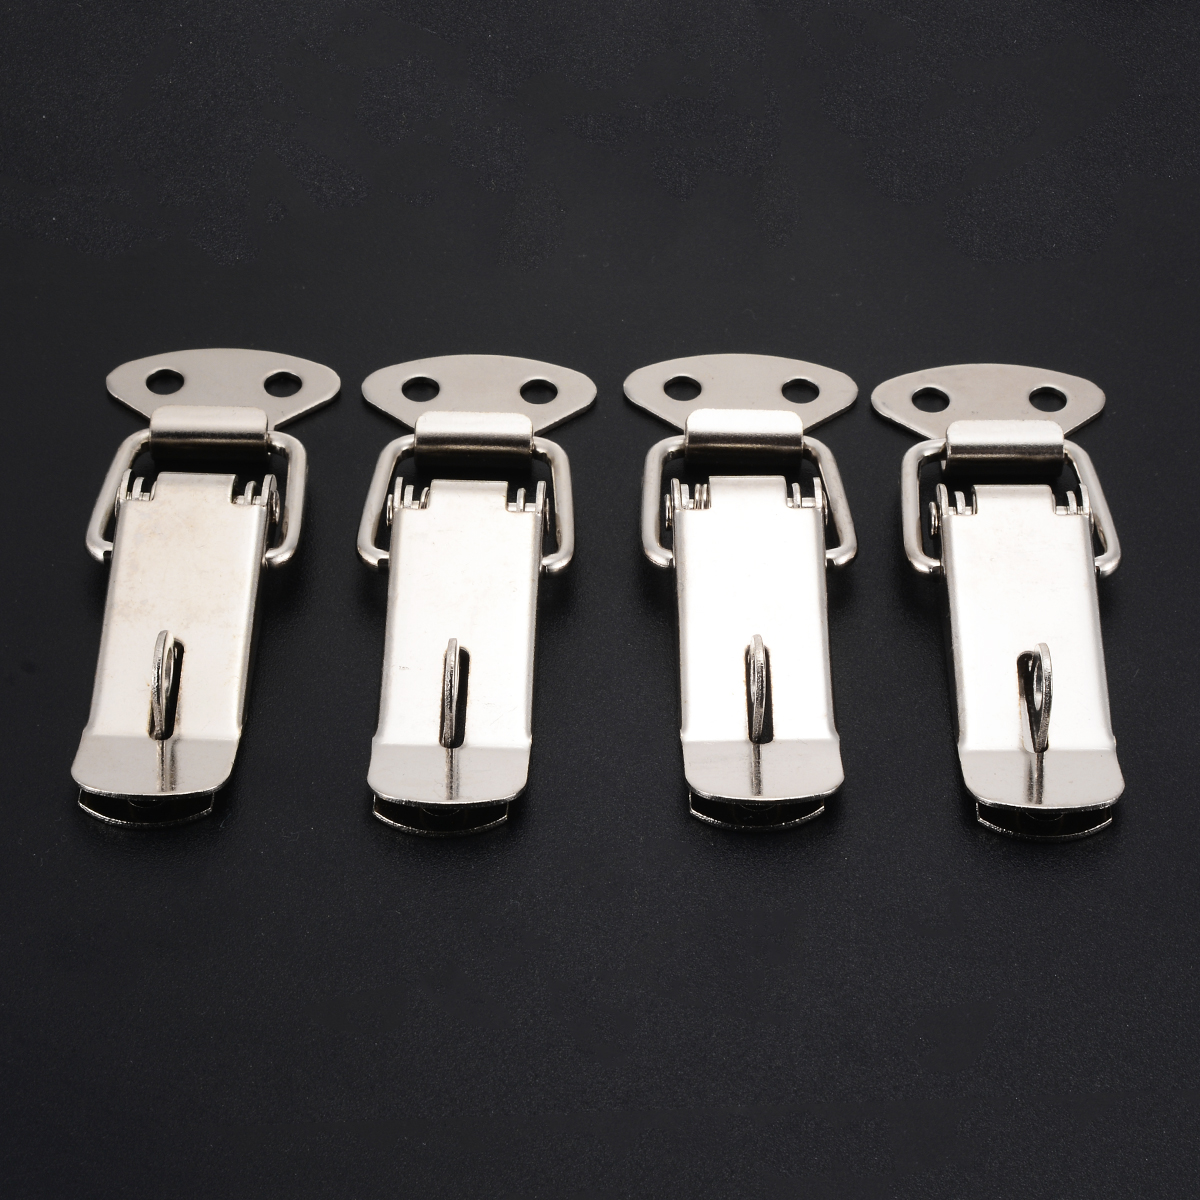 4Pcs Stainless Steel Spring Toggle Latch Clasp Case Catch Lock Buckle Iron Hasp For Case Chest Lock Box